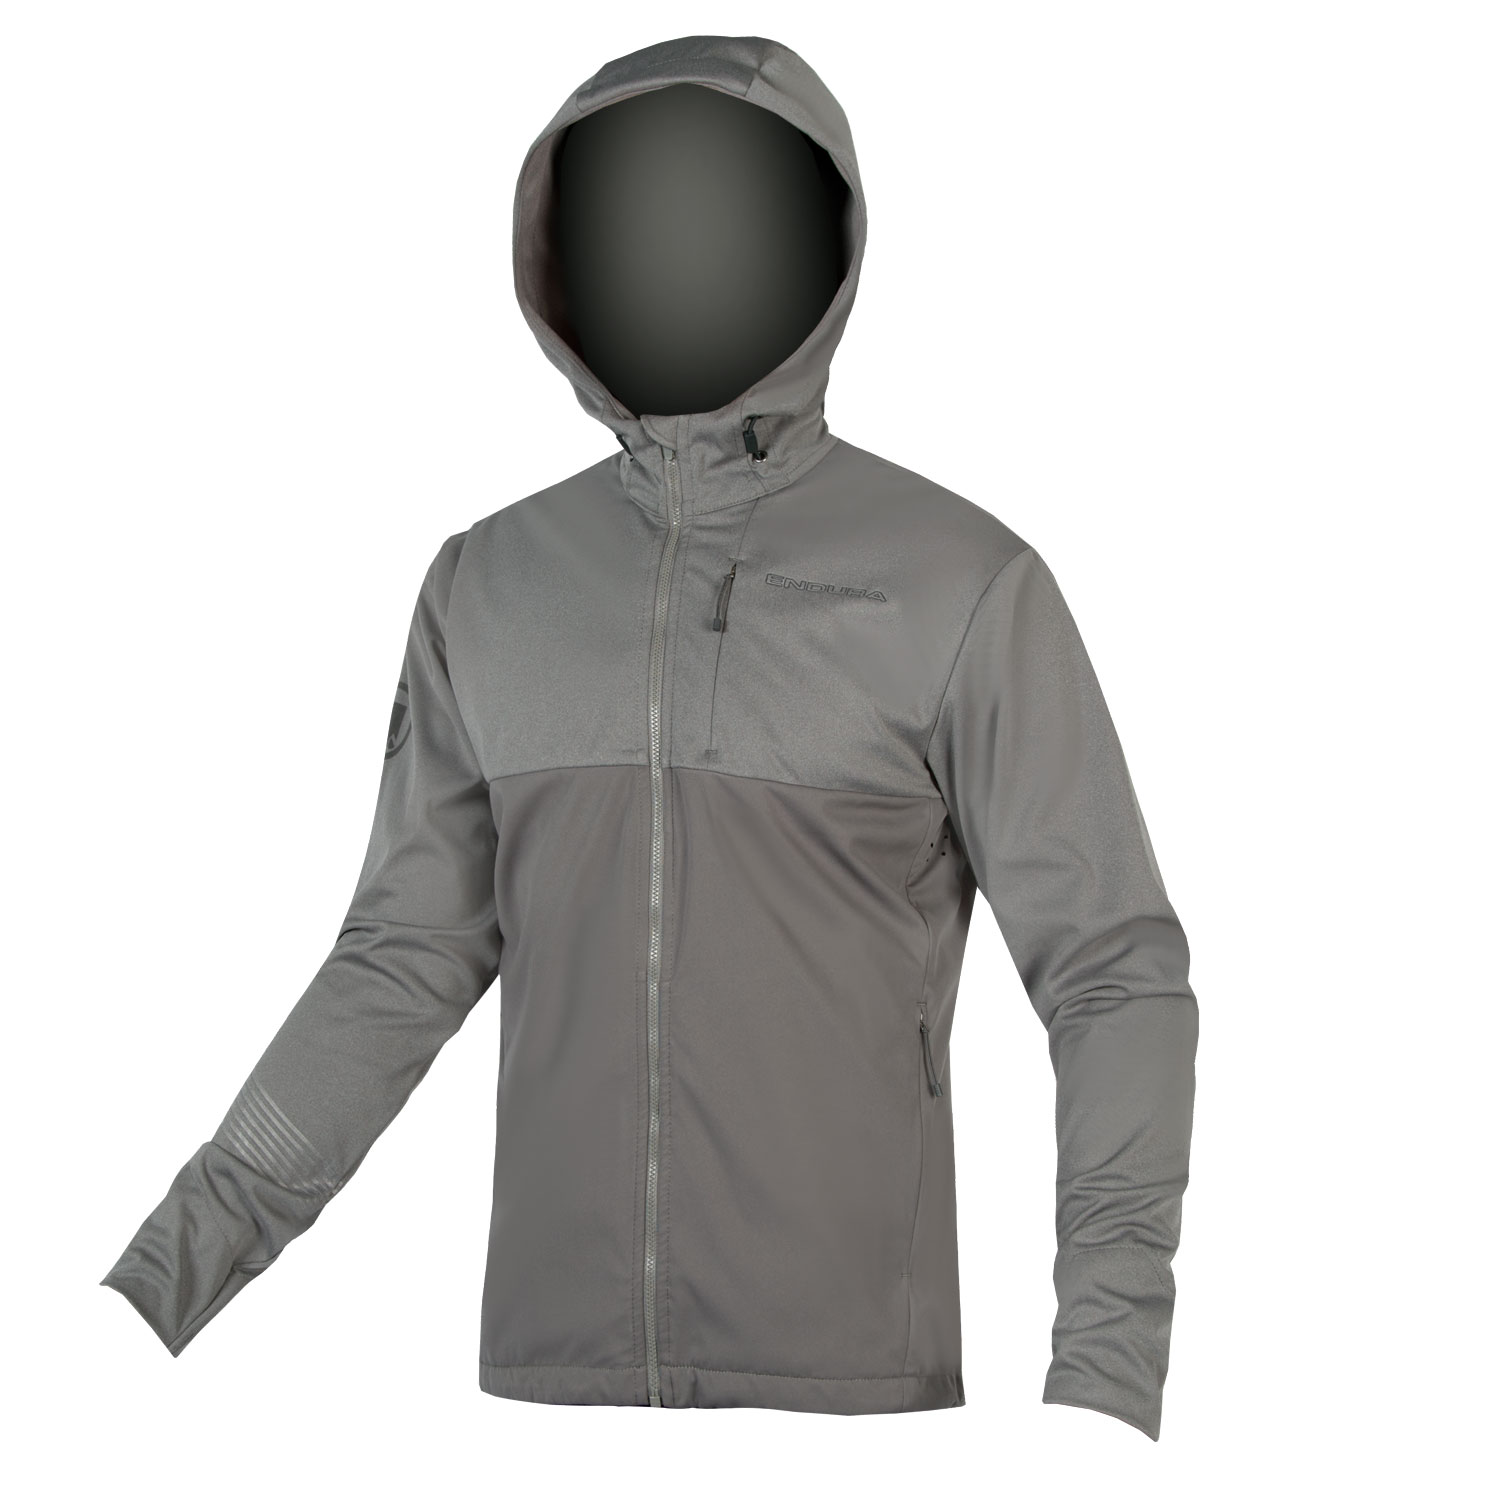 Endura Singletrack softshell jacket 2